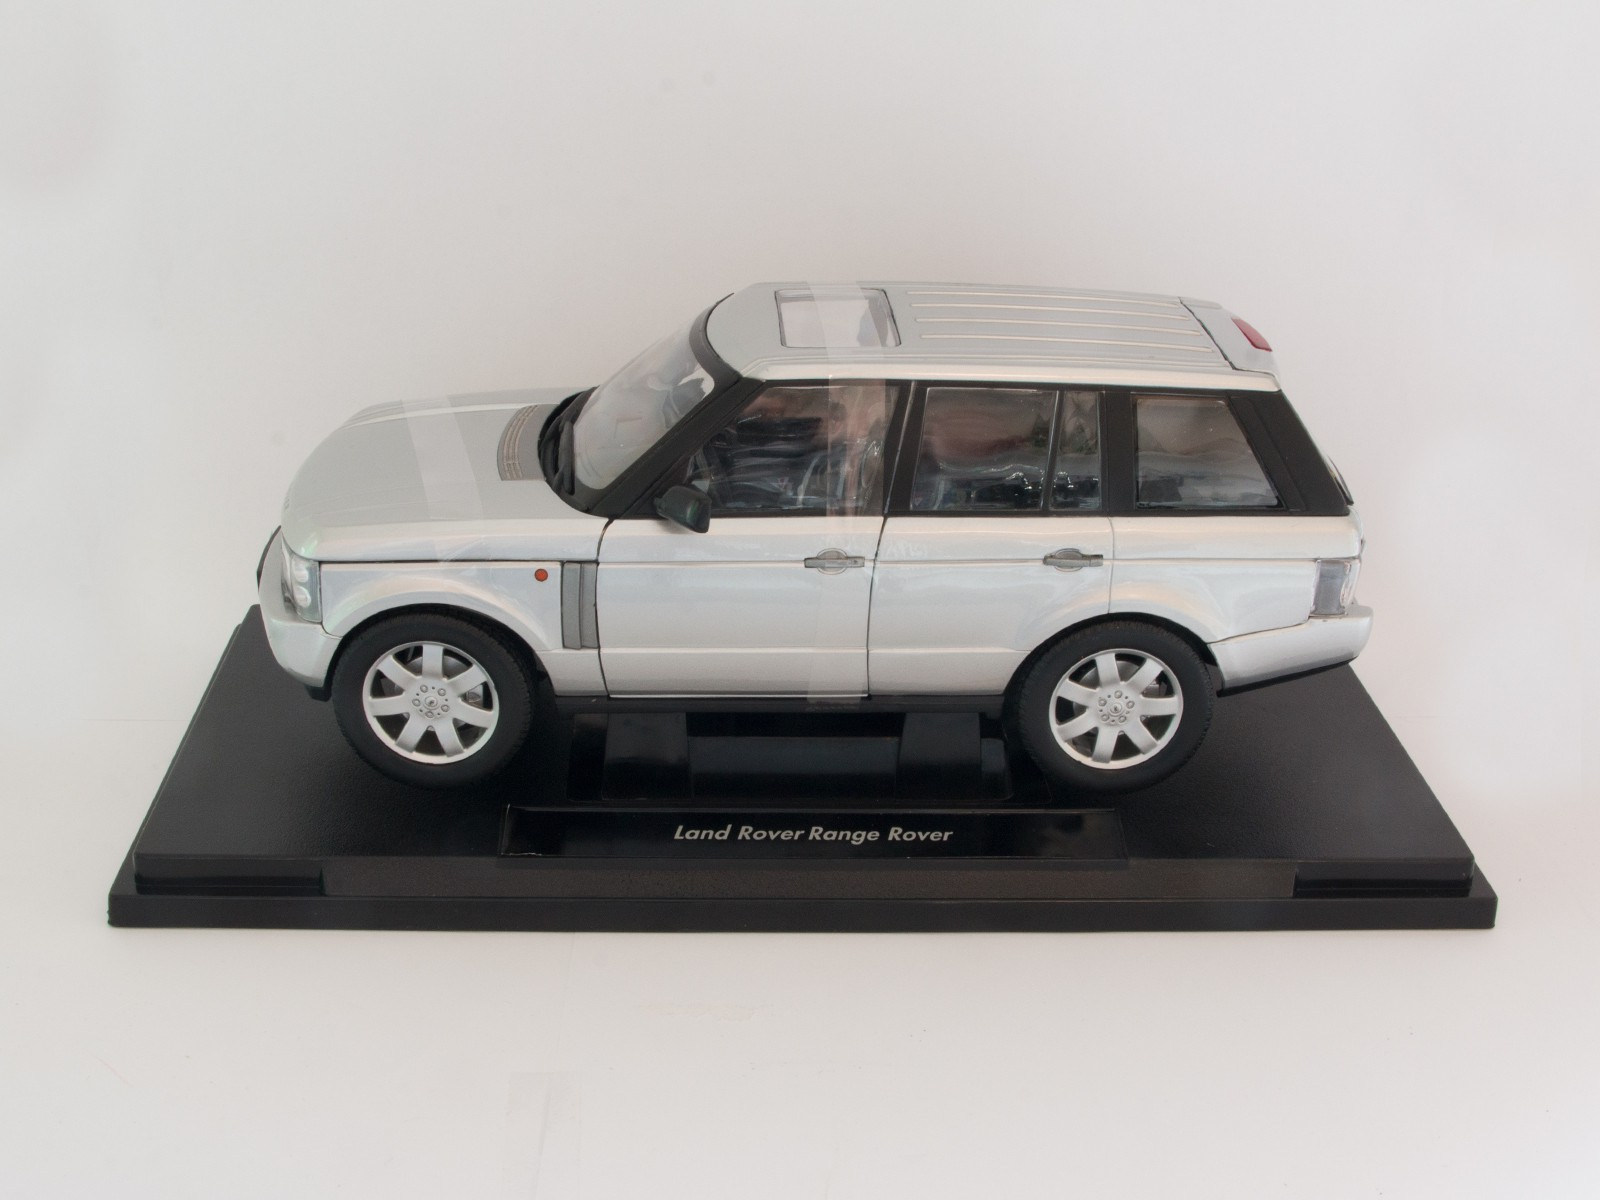 Welly 12536 1:18 Land Rover Range Rover silver